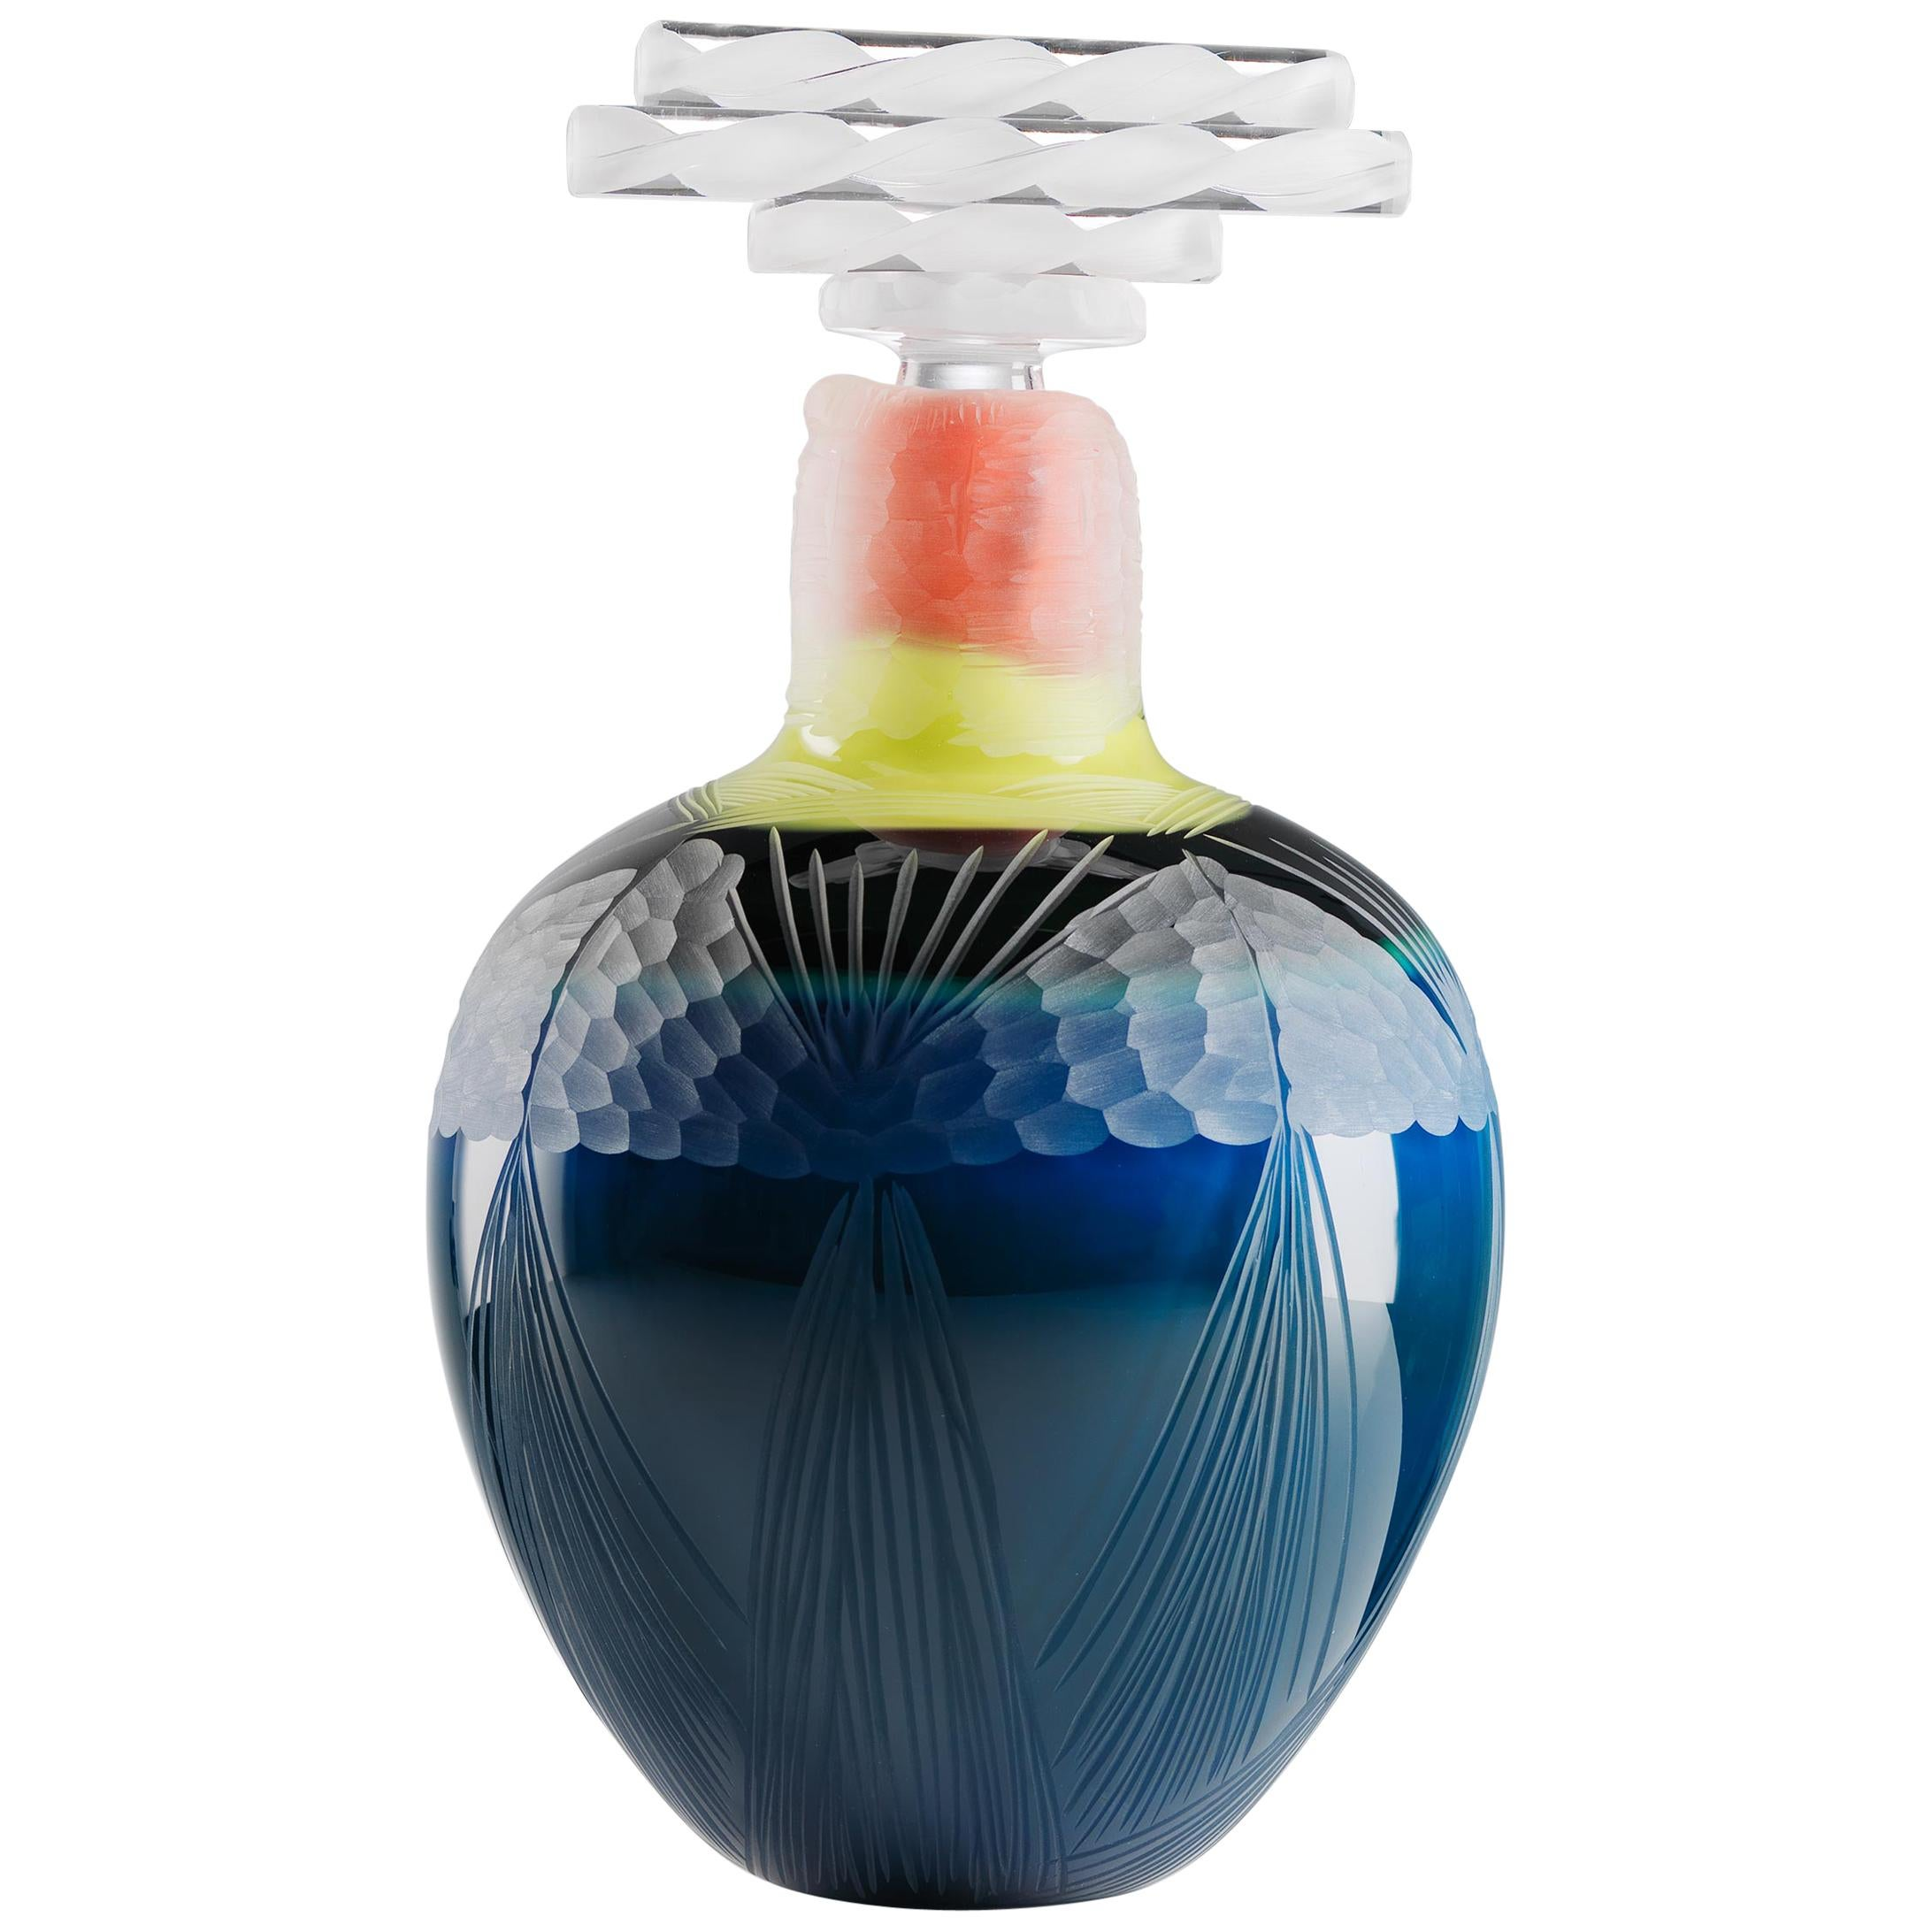 Peacock Blown Glass Vase Handmade by Juli Bolaños-Durman